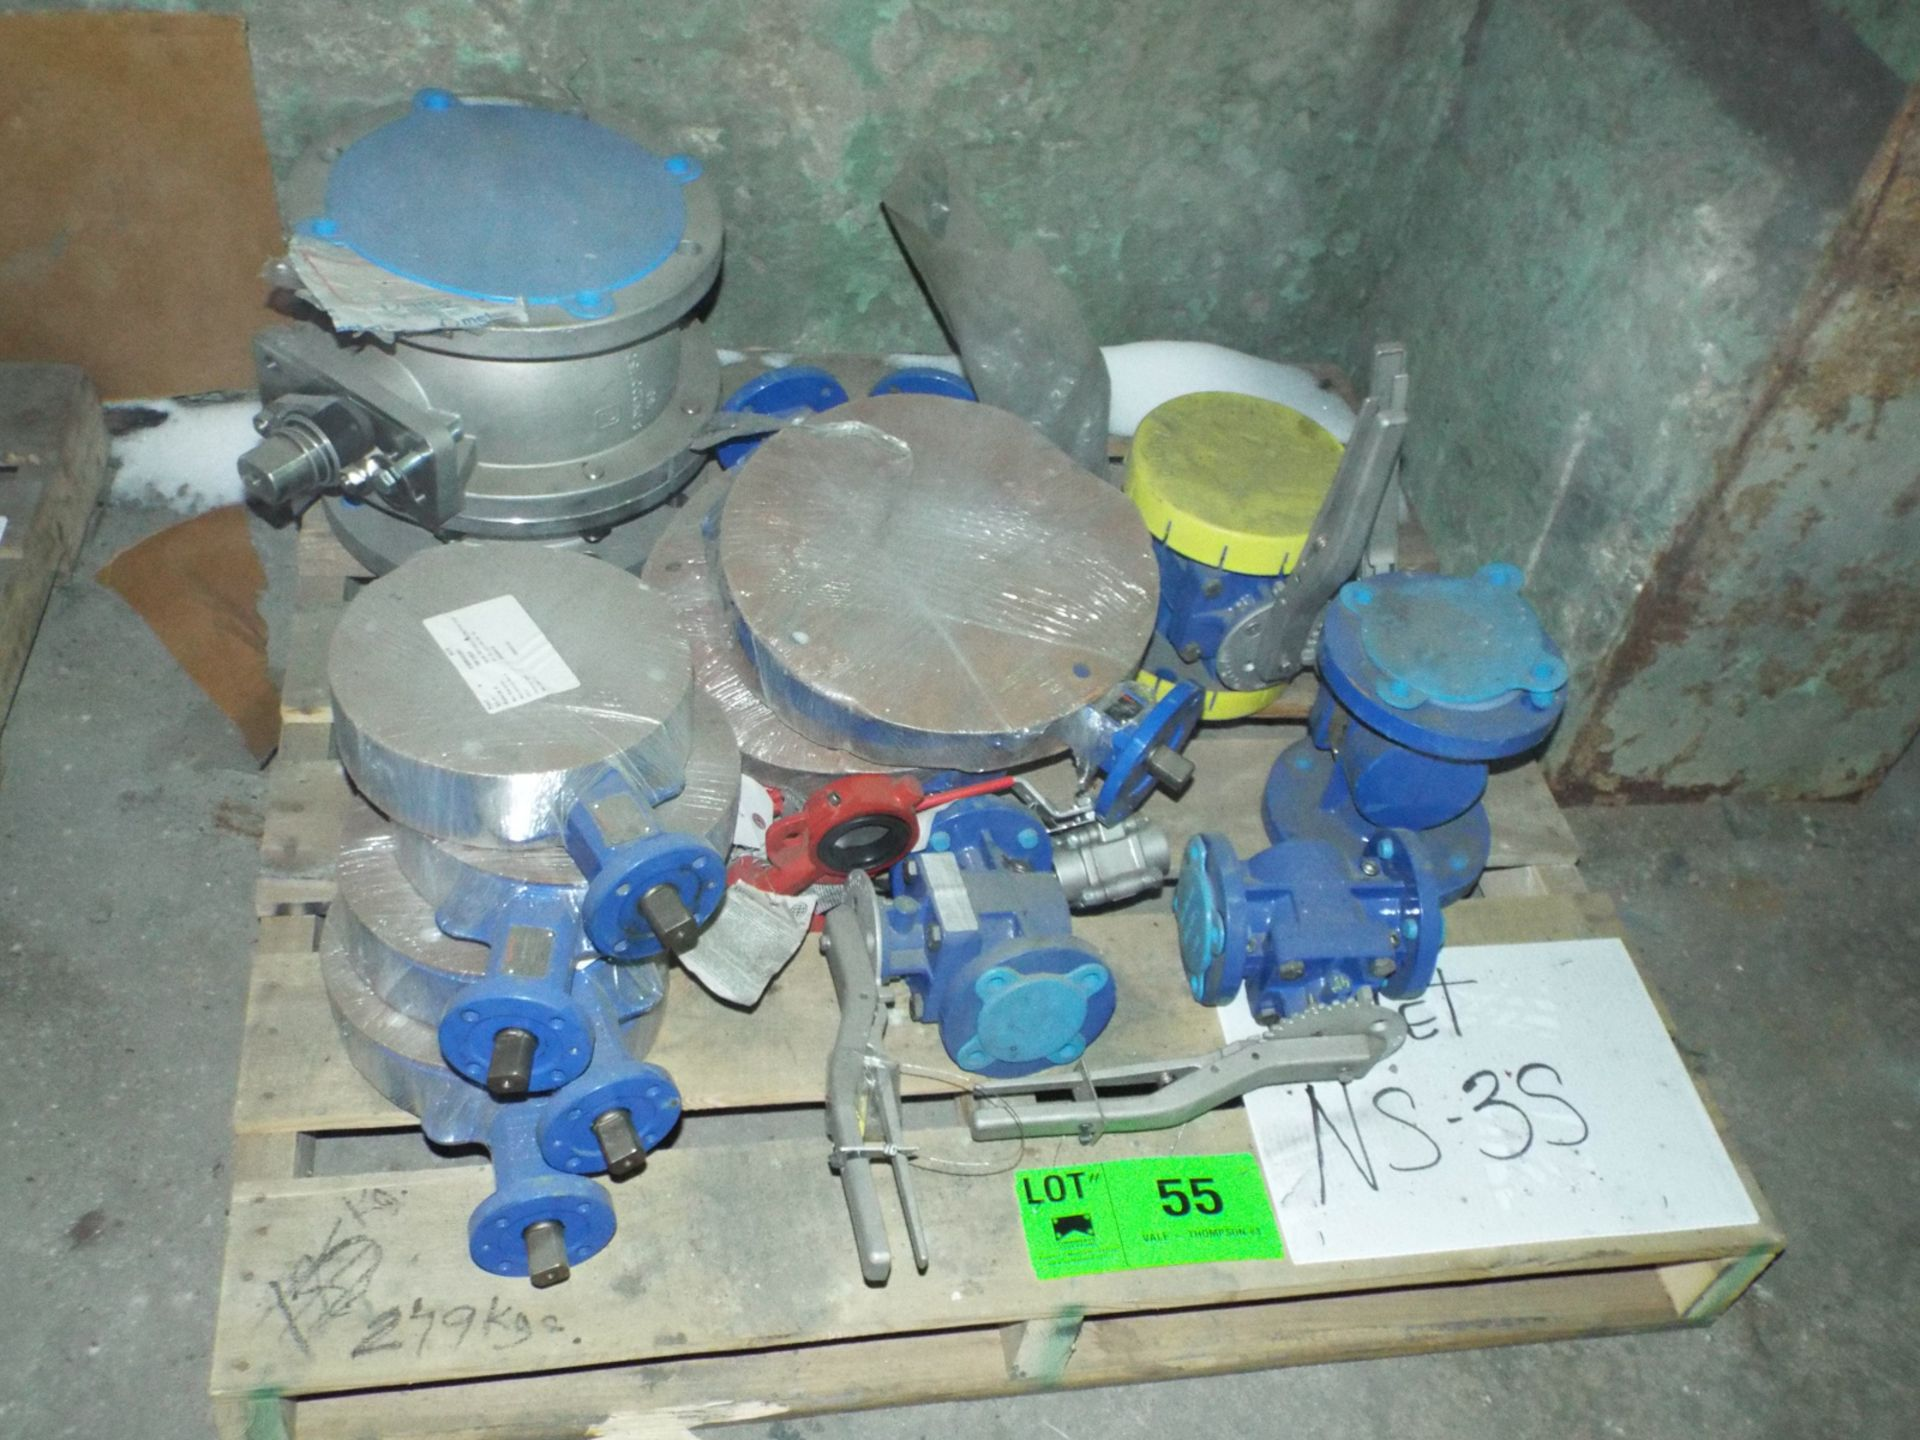 Lot 55 - LOT/ CONTENTS OF SKID - BUTTERFLY VALVES, OXYGEN VALVES ASSORTED SIZES (NS-3S)